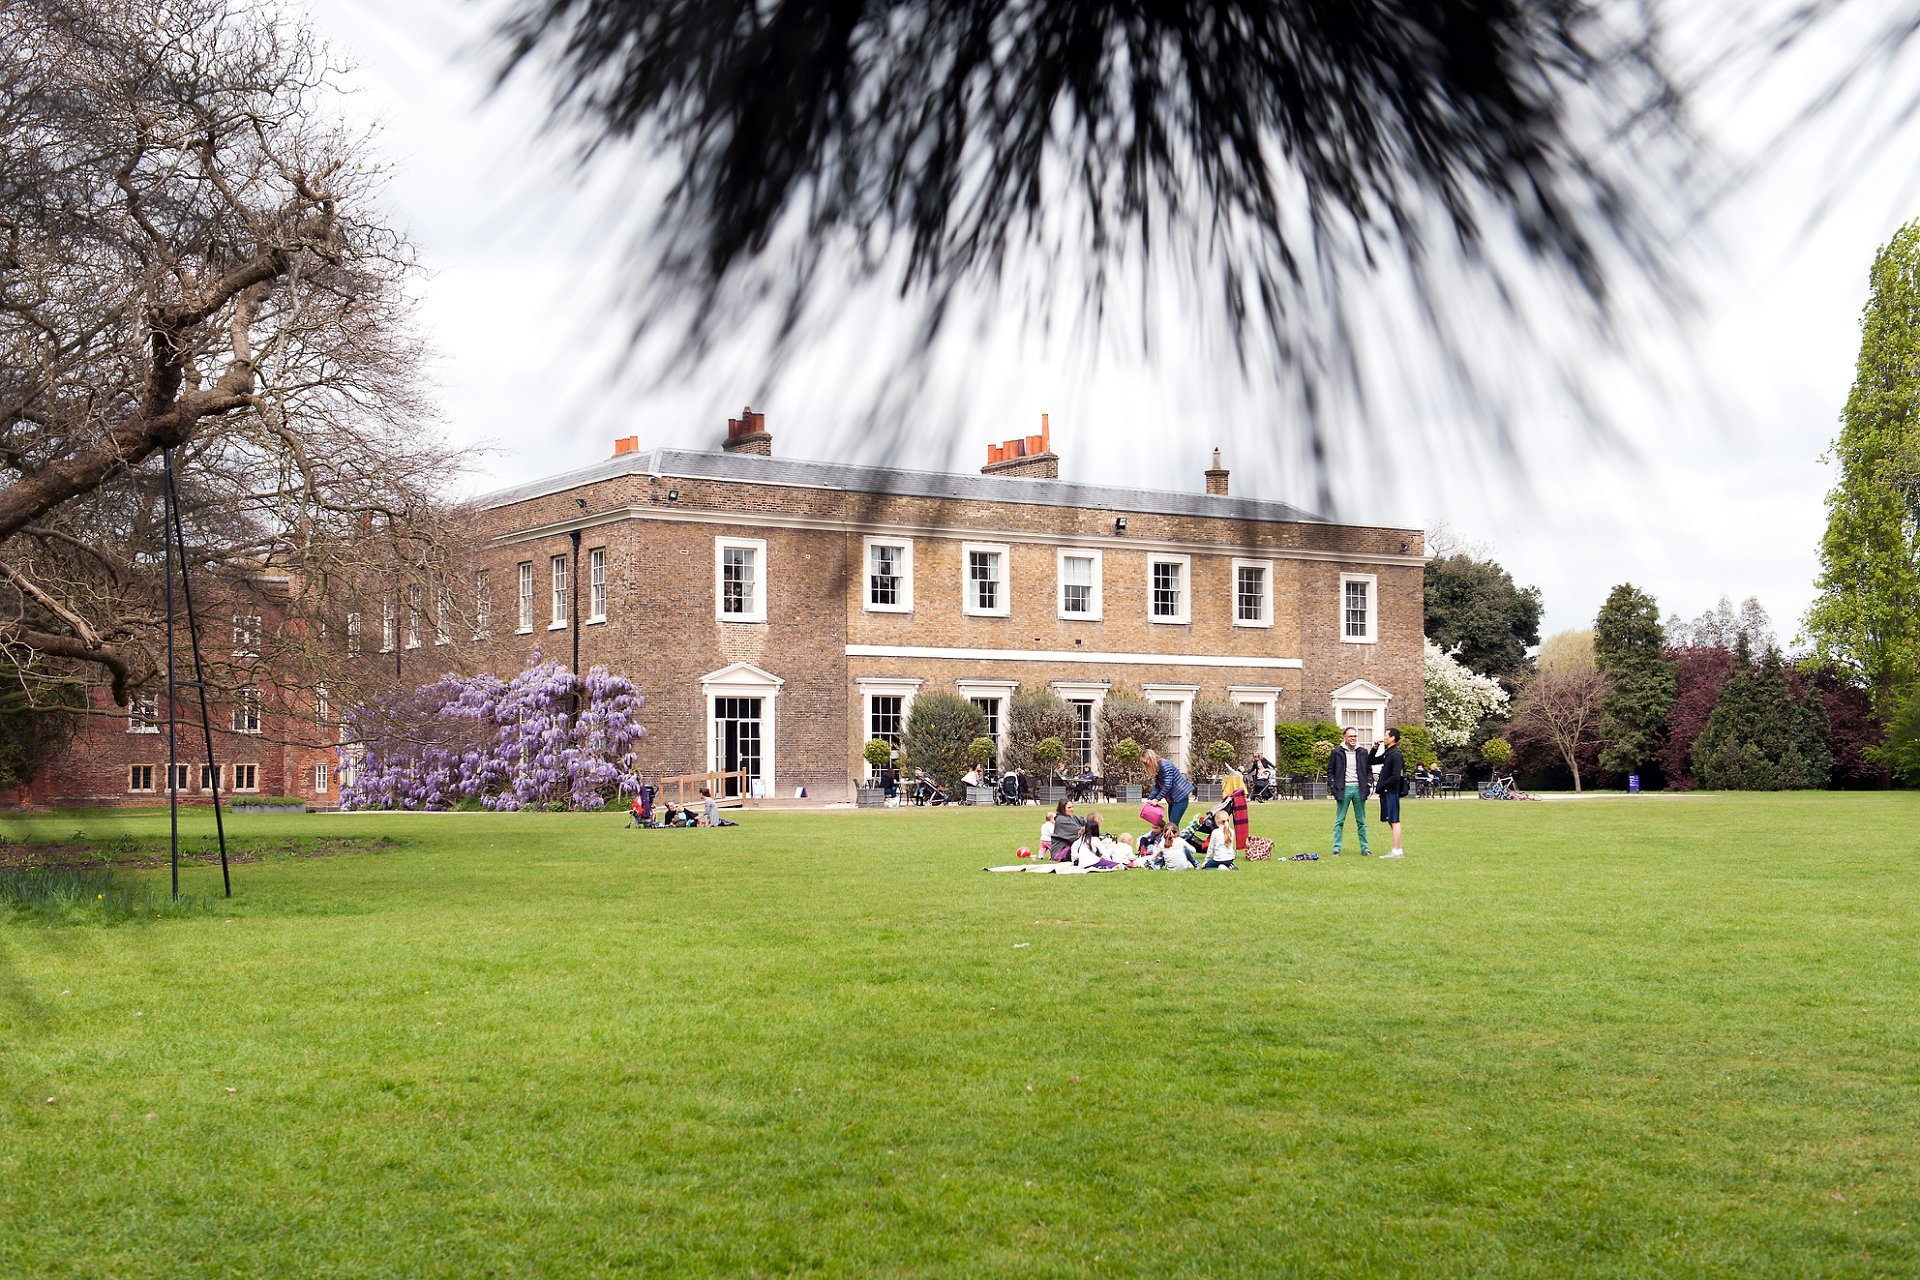 The main lawn at Fulham Palace in Spring is open to the public until 5pm every day